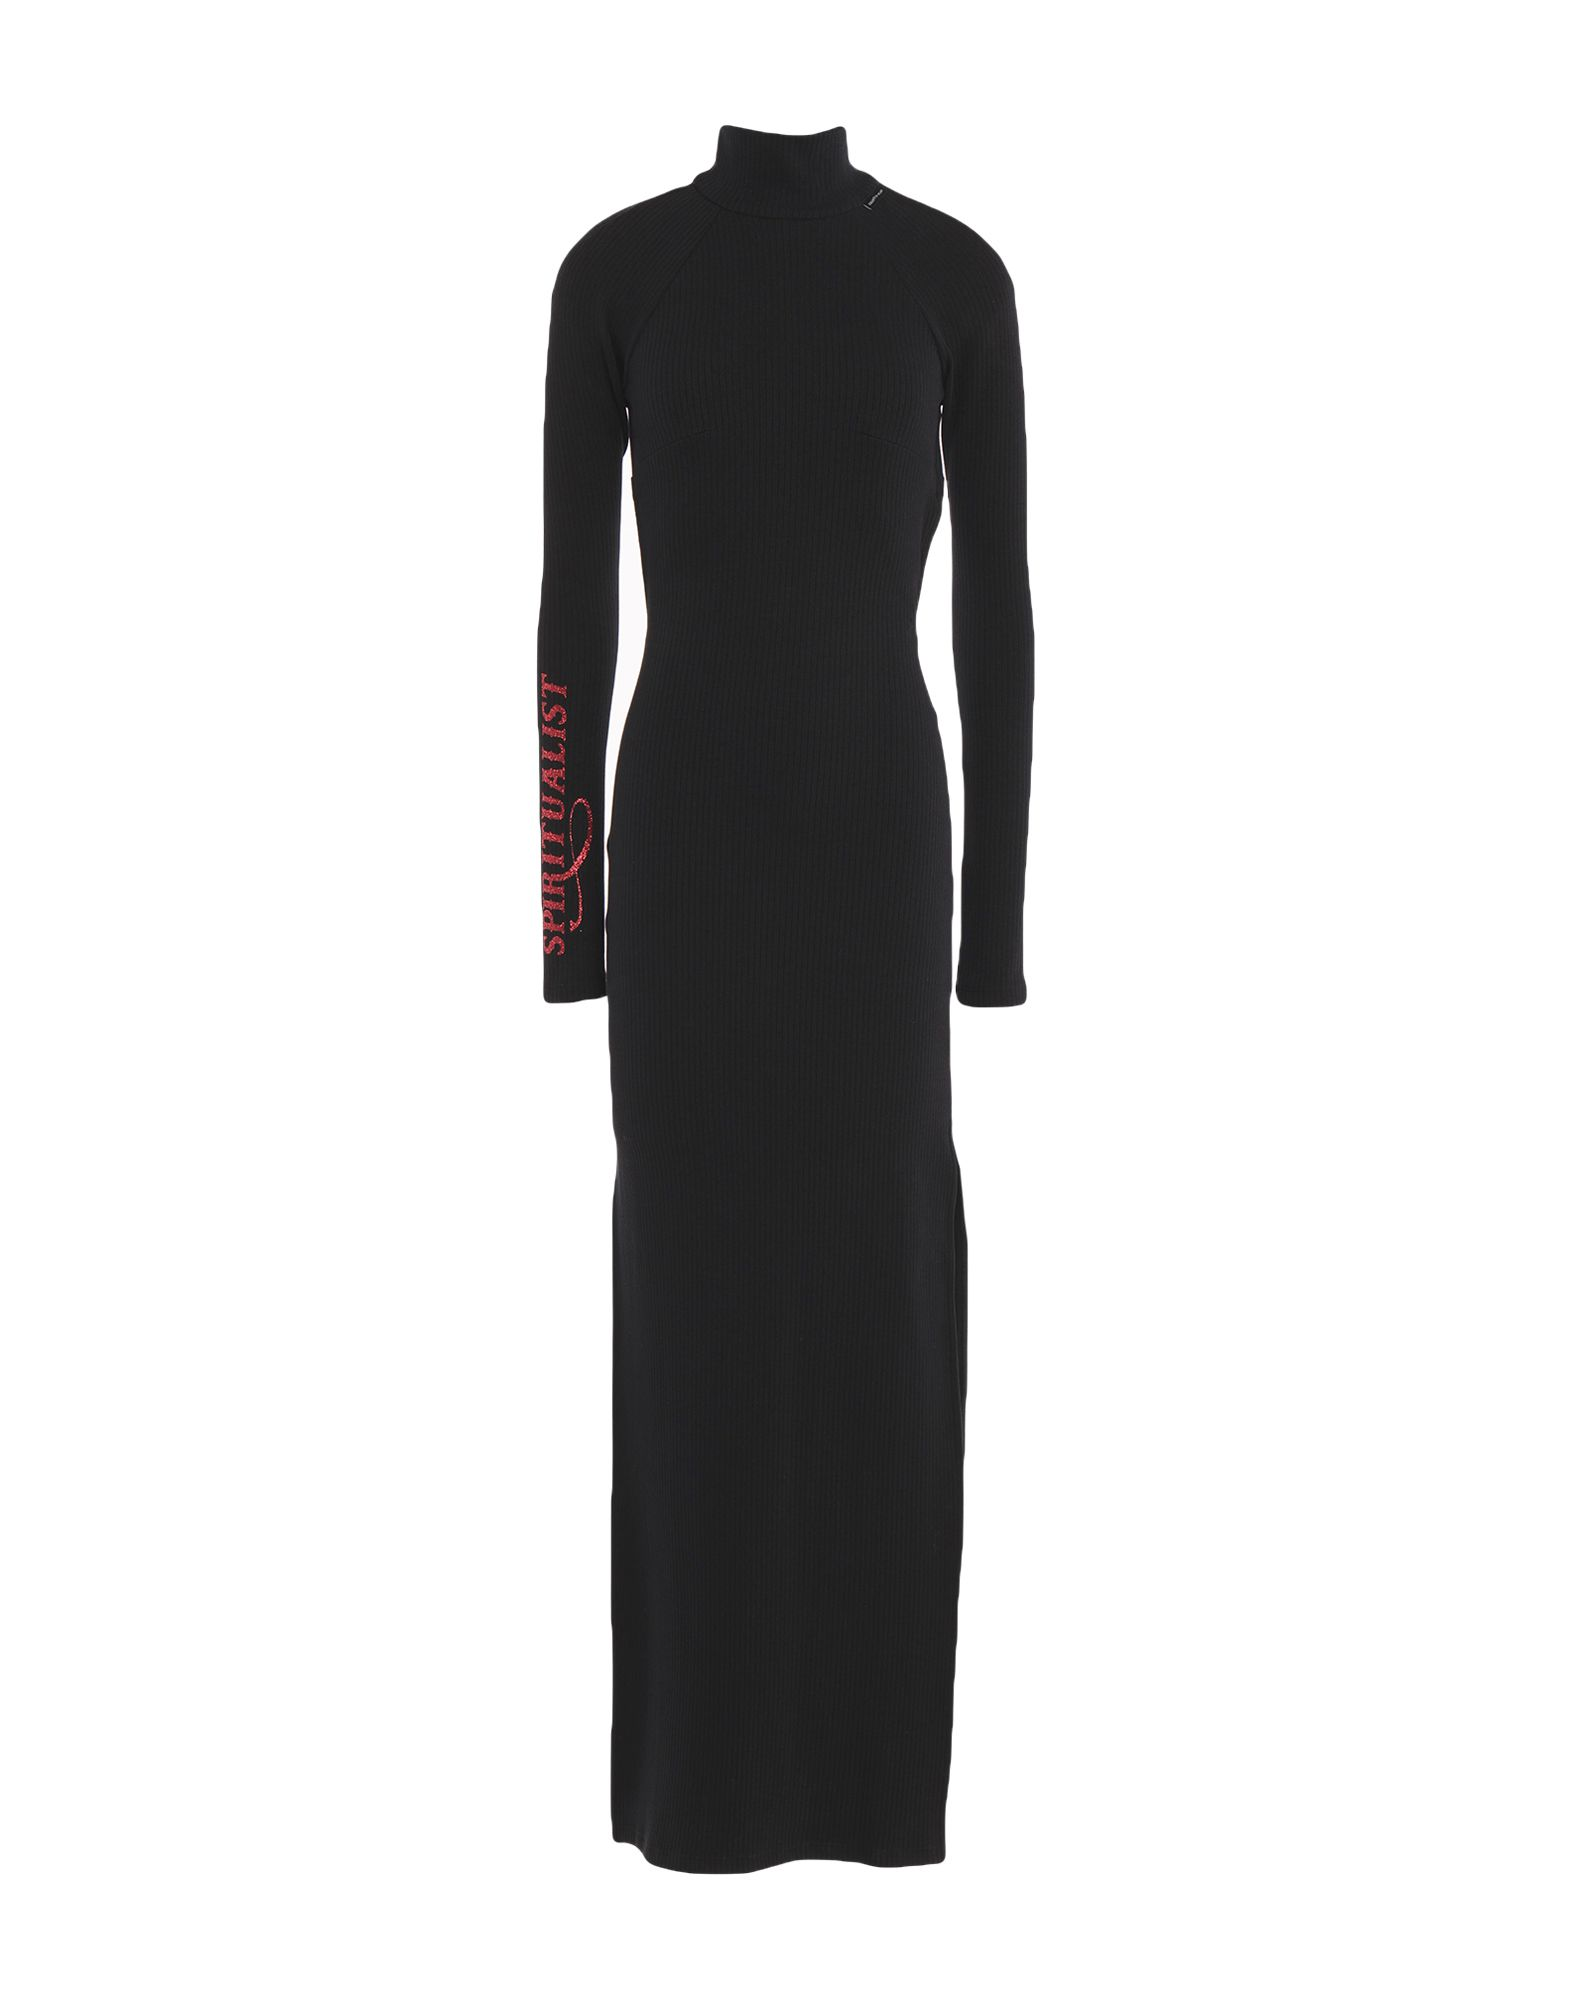 MARCELO BURLON Long dresses. jersey, ribbed, glitter, logo, solid color, turtleneck, long sleeves, dual side vents, unlined, stretch. 95% Cotton, 5% Elastane